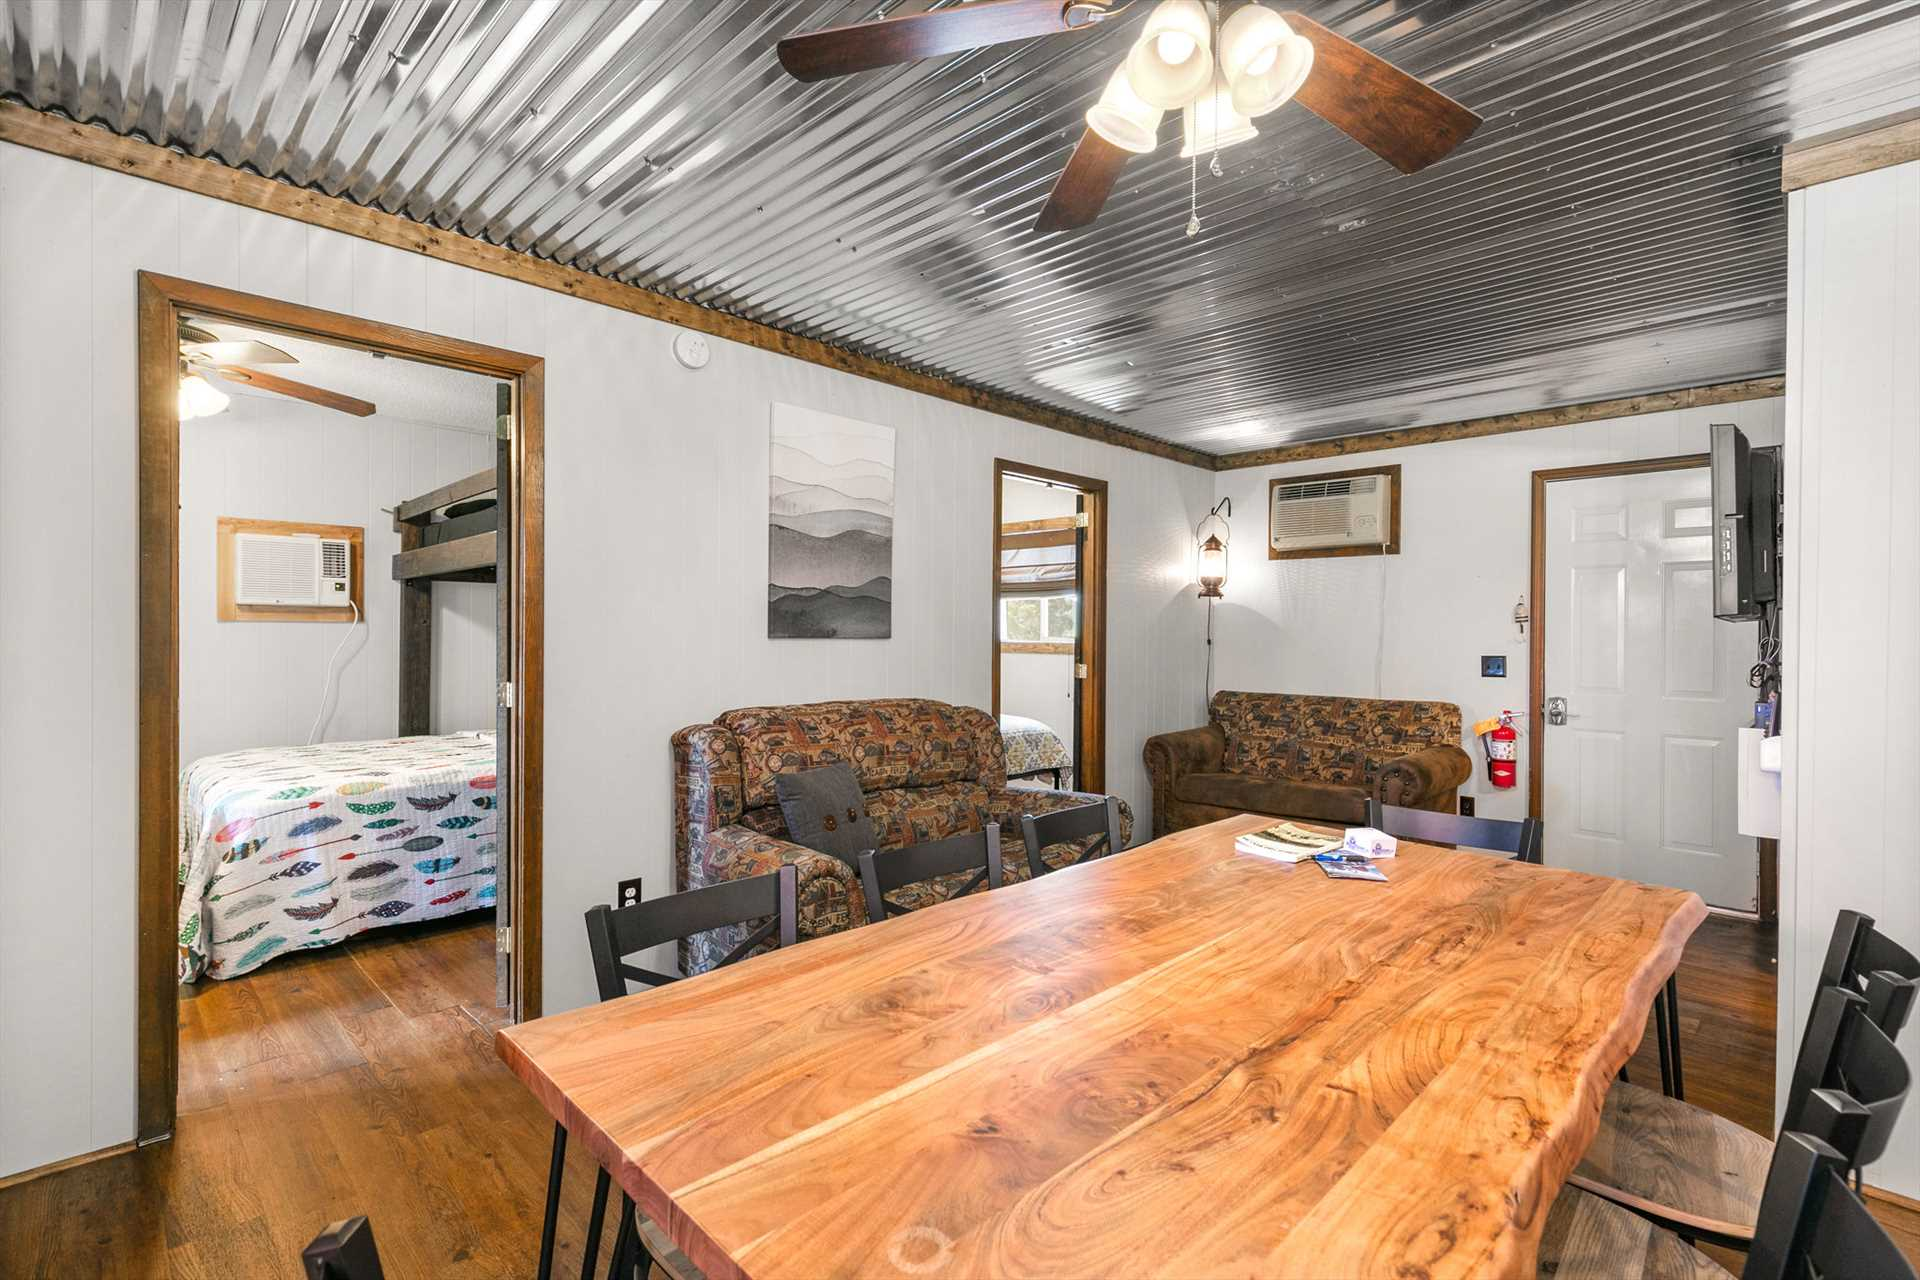 There are two bedrooms located off the living area and both